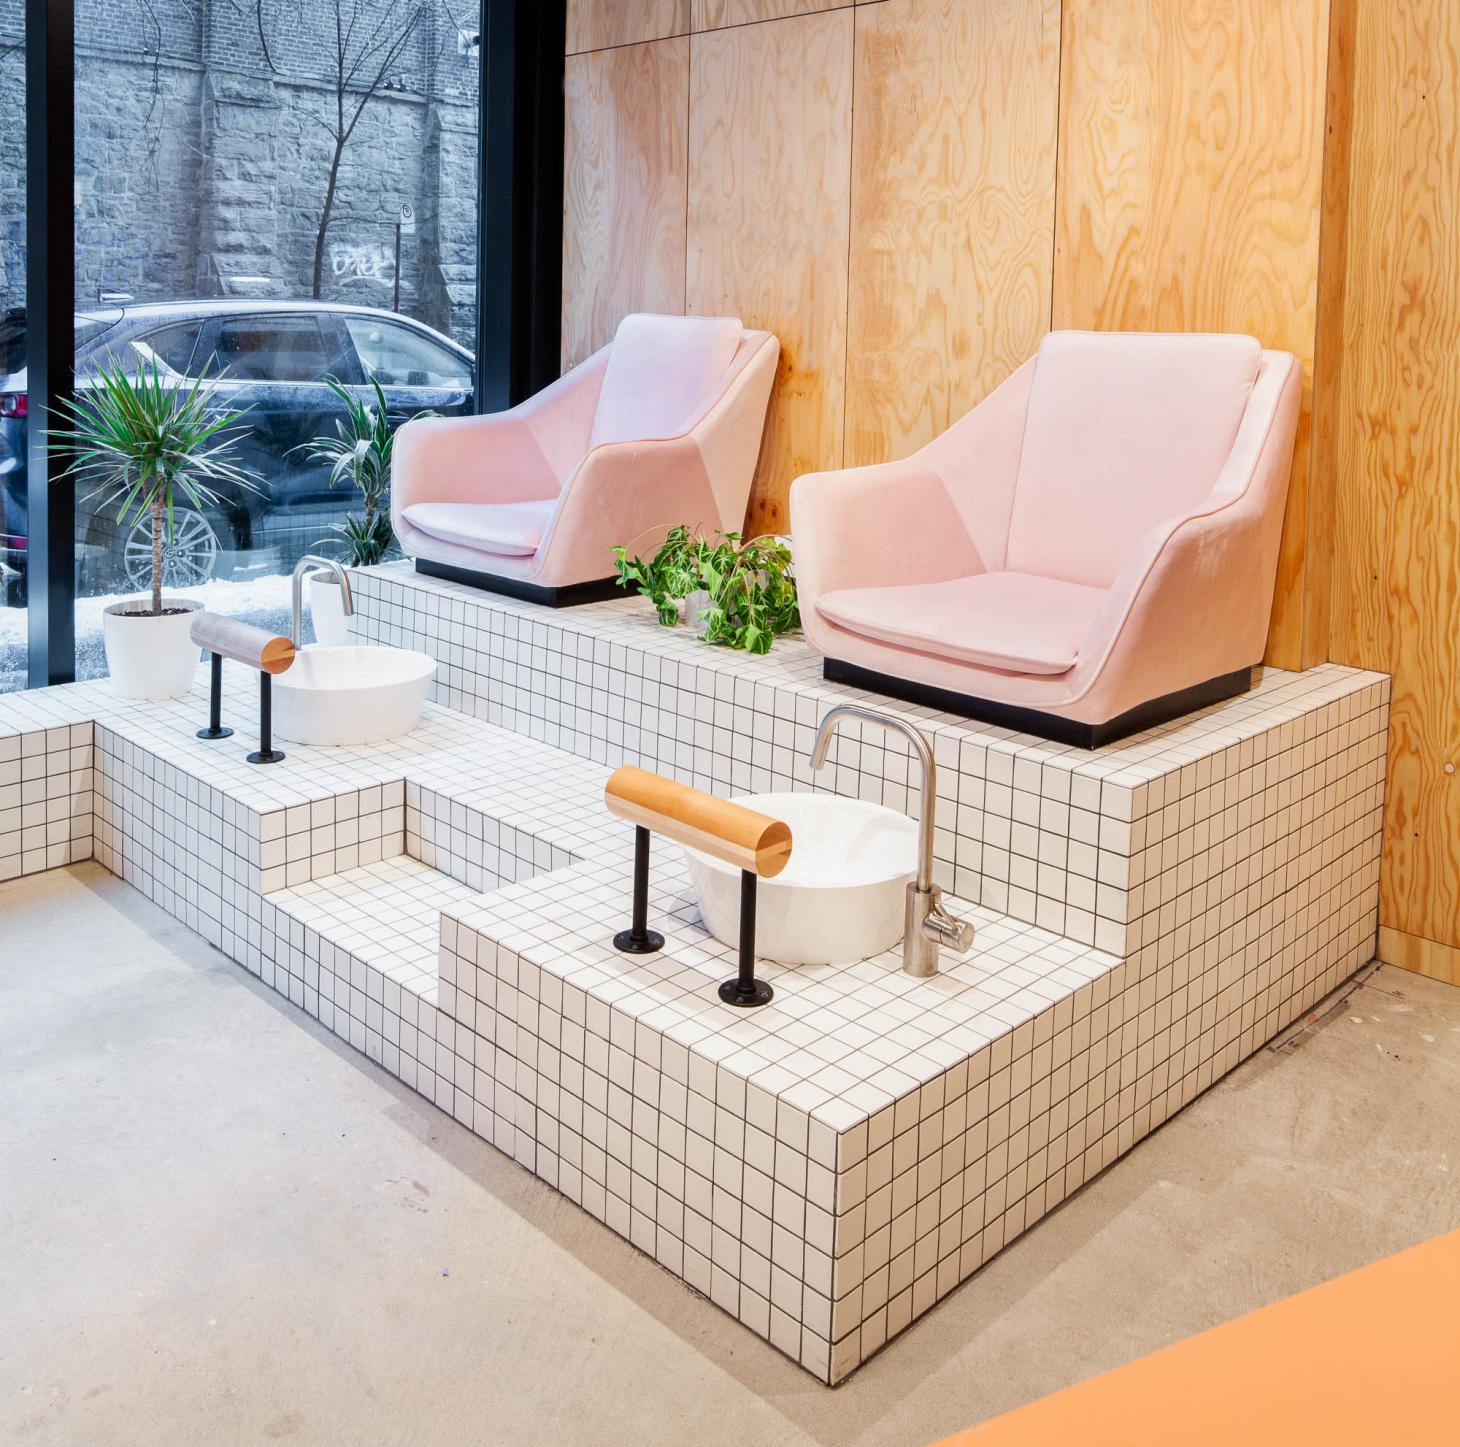 The pedicure chairs at Le Hideout, Melbourne